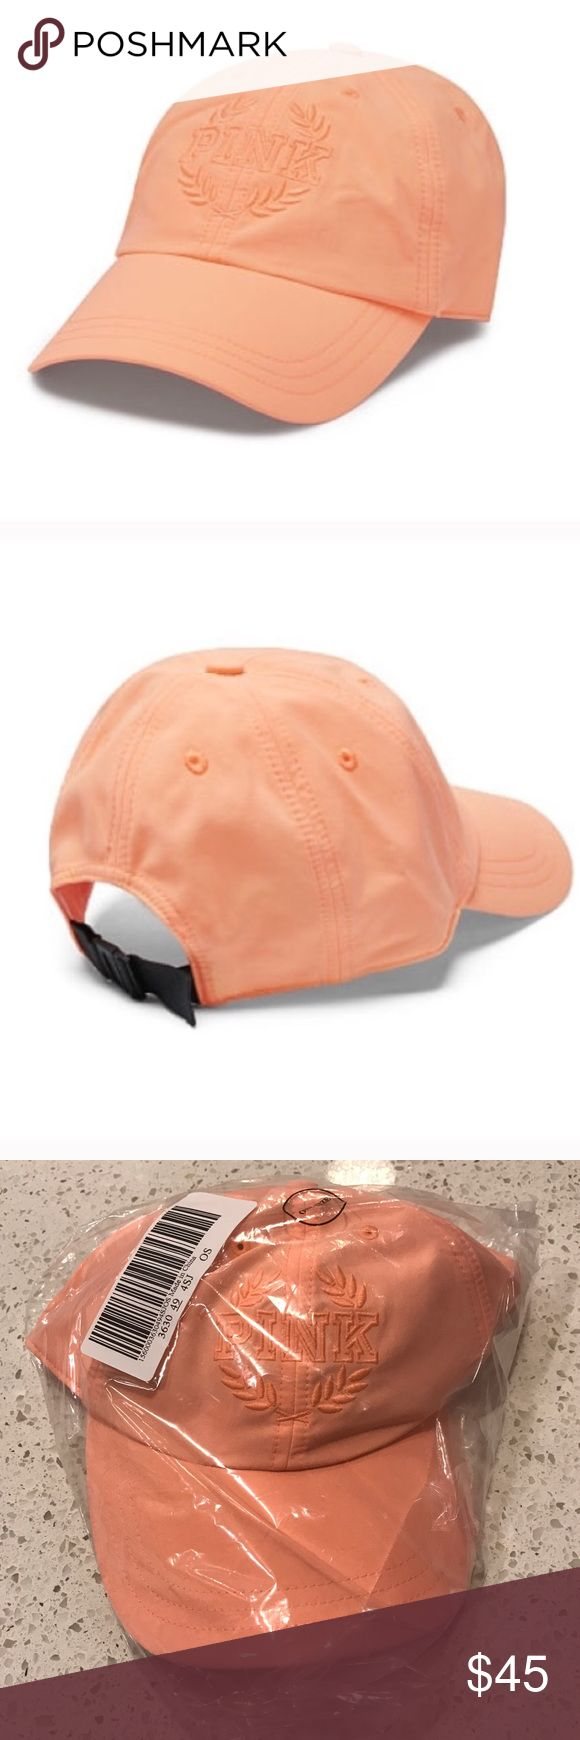 VS VICTORIAS SECRET PINK SPORT CLIP BASEBALL HAT VS VICTORIAS SECRET PINK SPORT CLIP BASEBALL HAT CAP Product Details Top it off in the season's must-have hat! Color: Sunset Glow Sport clip Adjustable One size fits all Imported nylon PINK Victoria's Secret Accessories Hats